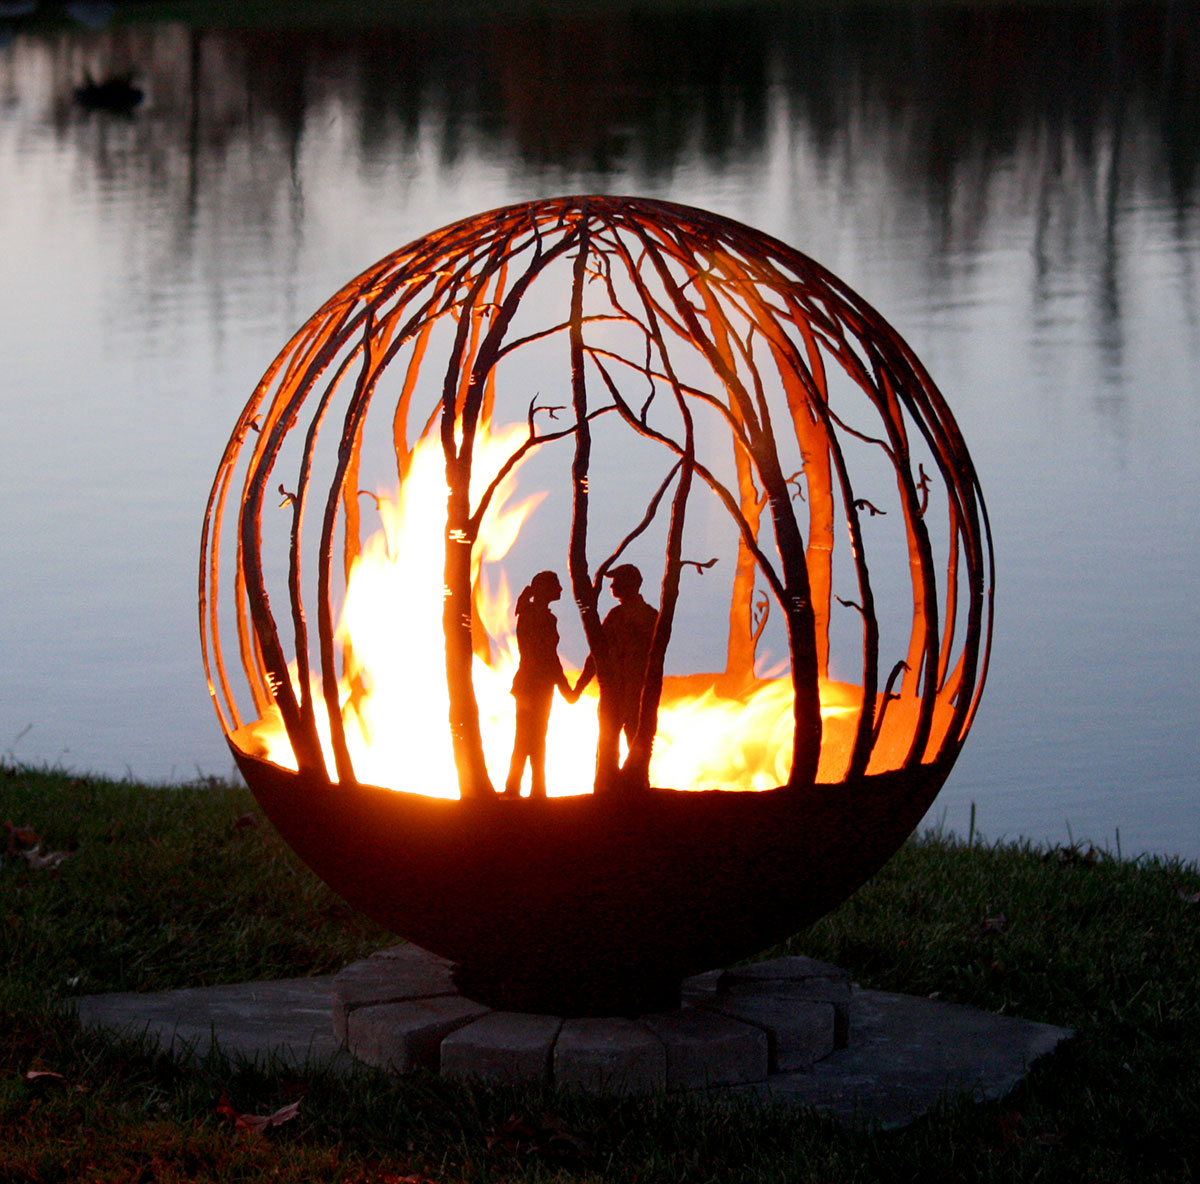 "Winter Woods - Birch Tree fire pit sphere 37"" - Winter Woods Fire Pit Sphere Design Your Own"